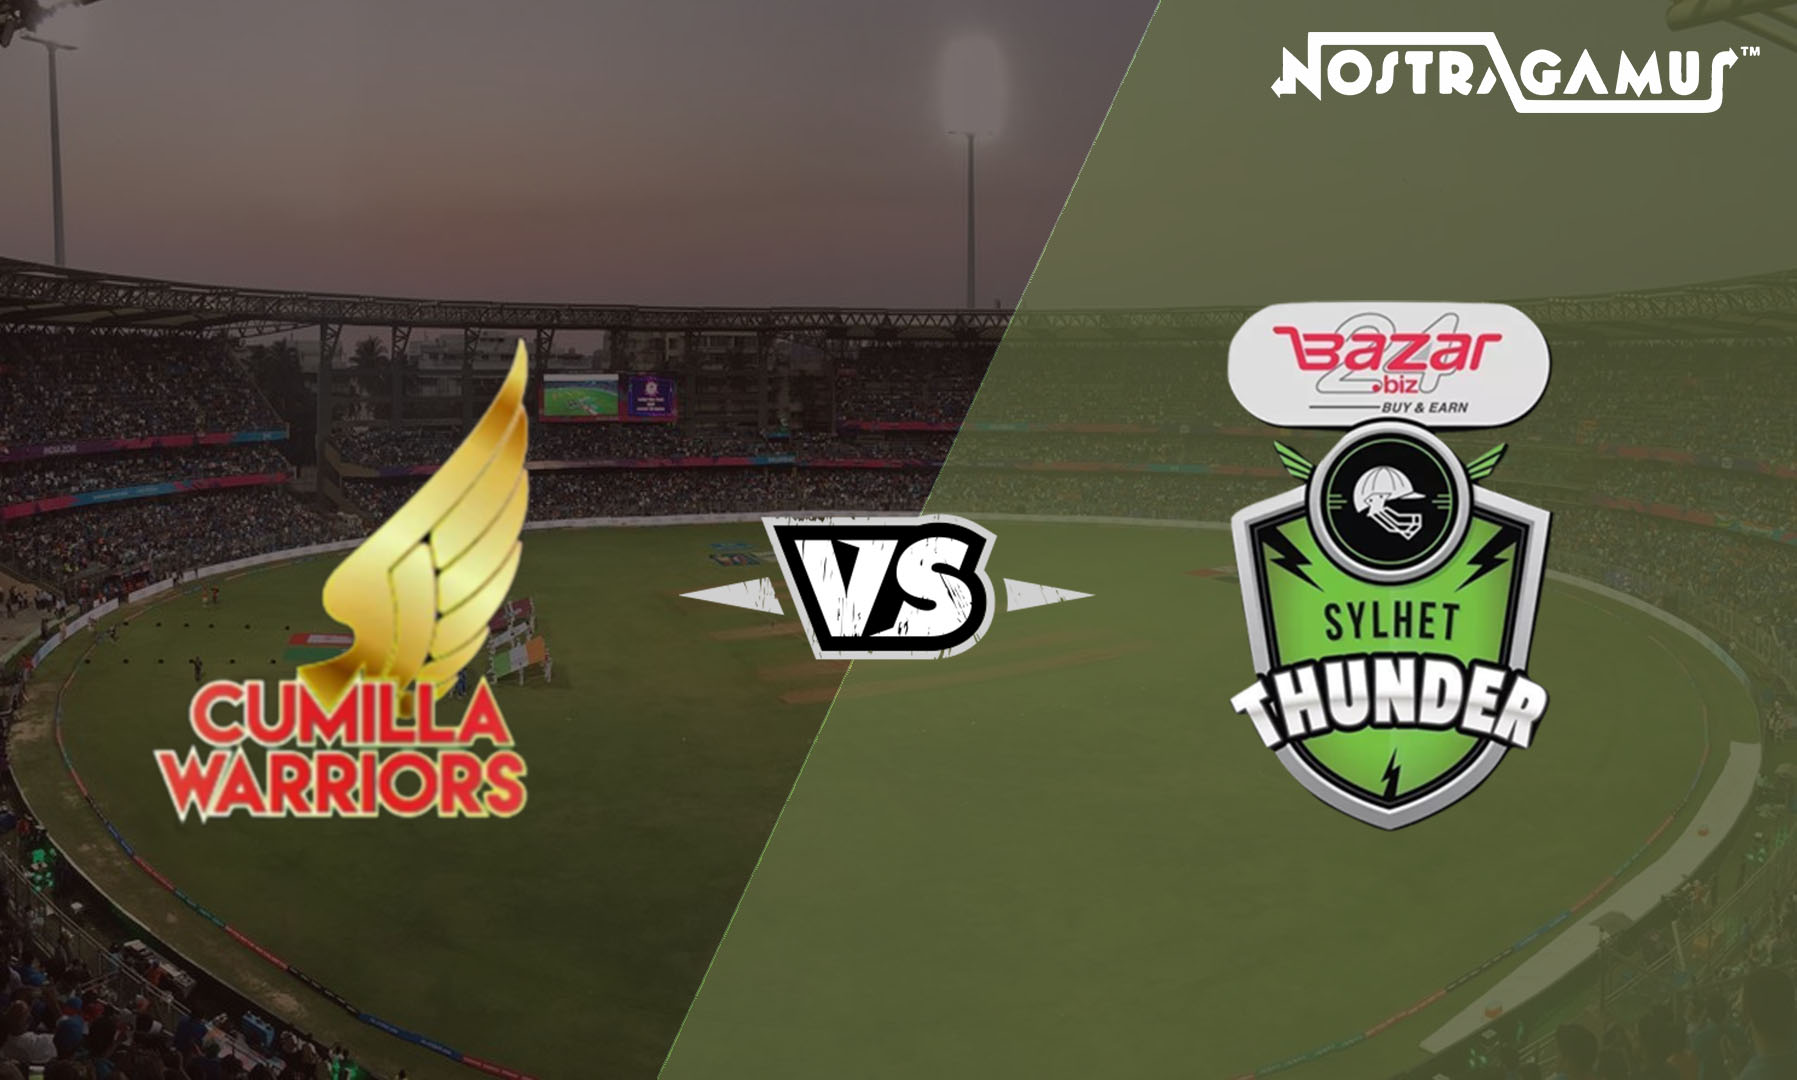 BPL 2019 Match Prediction: Sylhet Thunder vs Cumilla Warriors